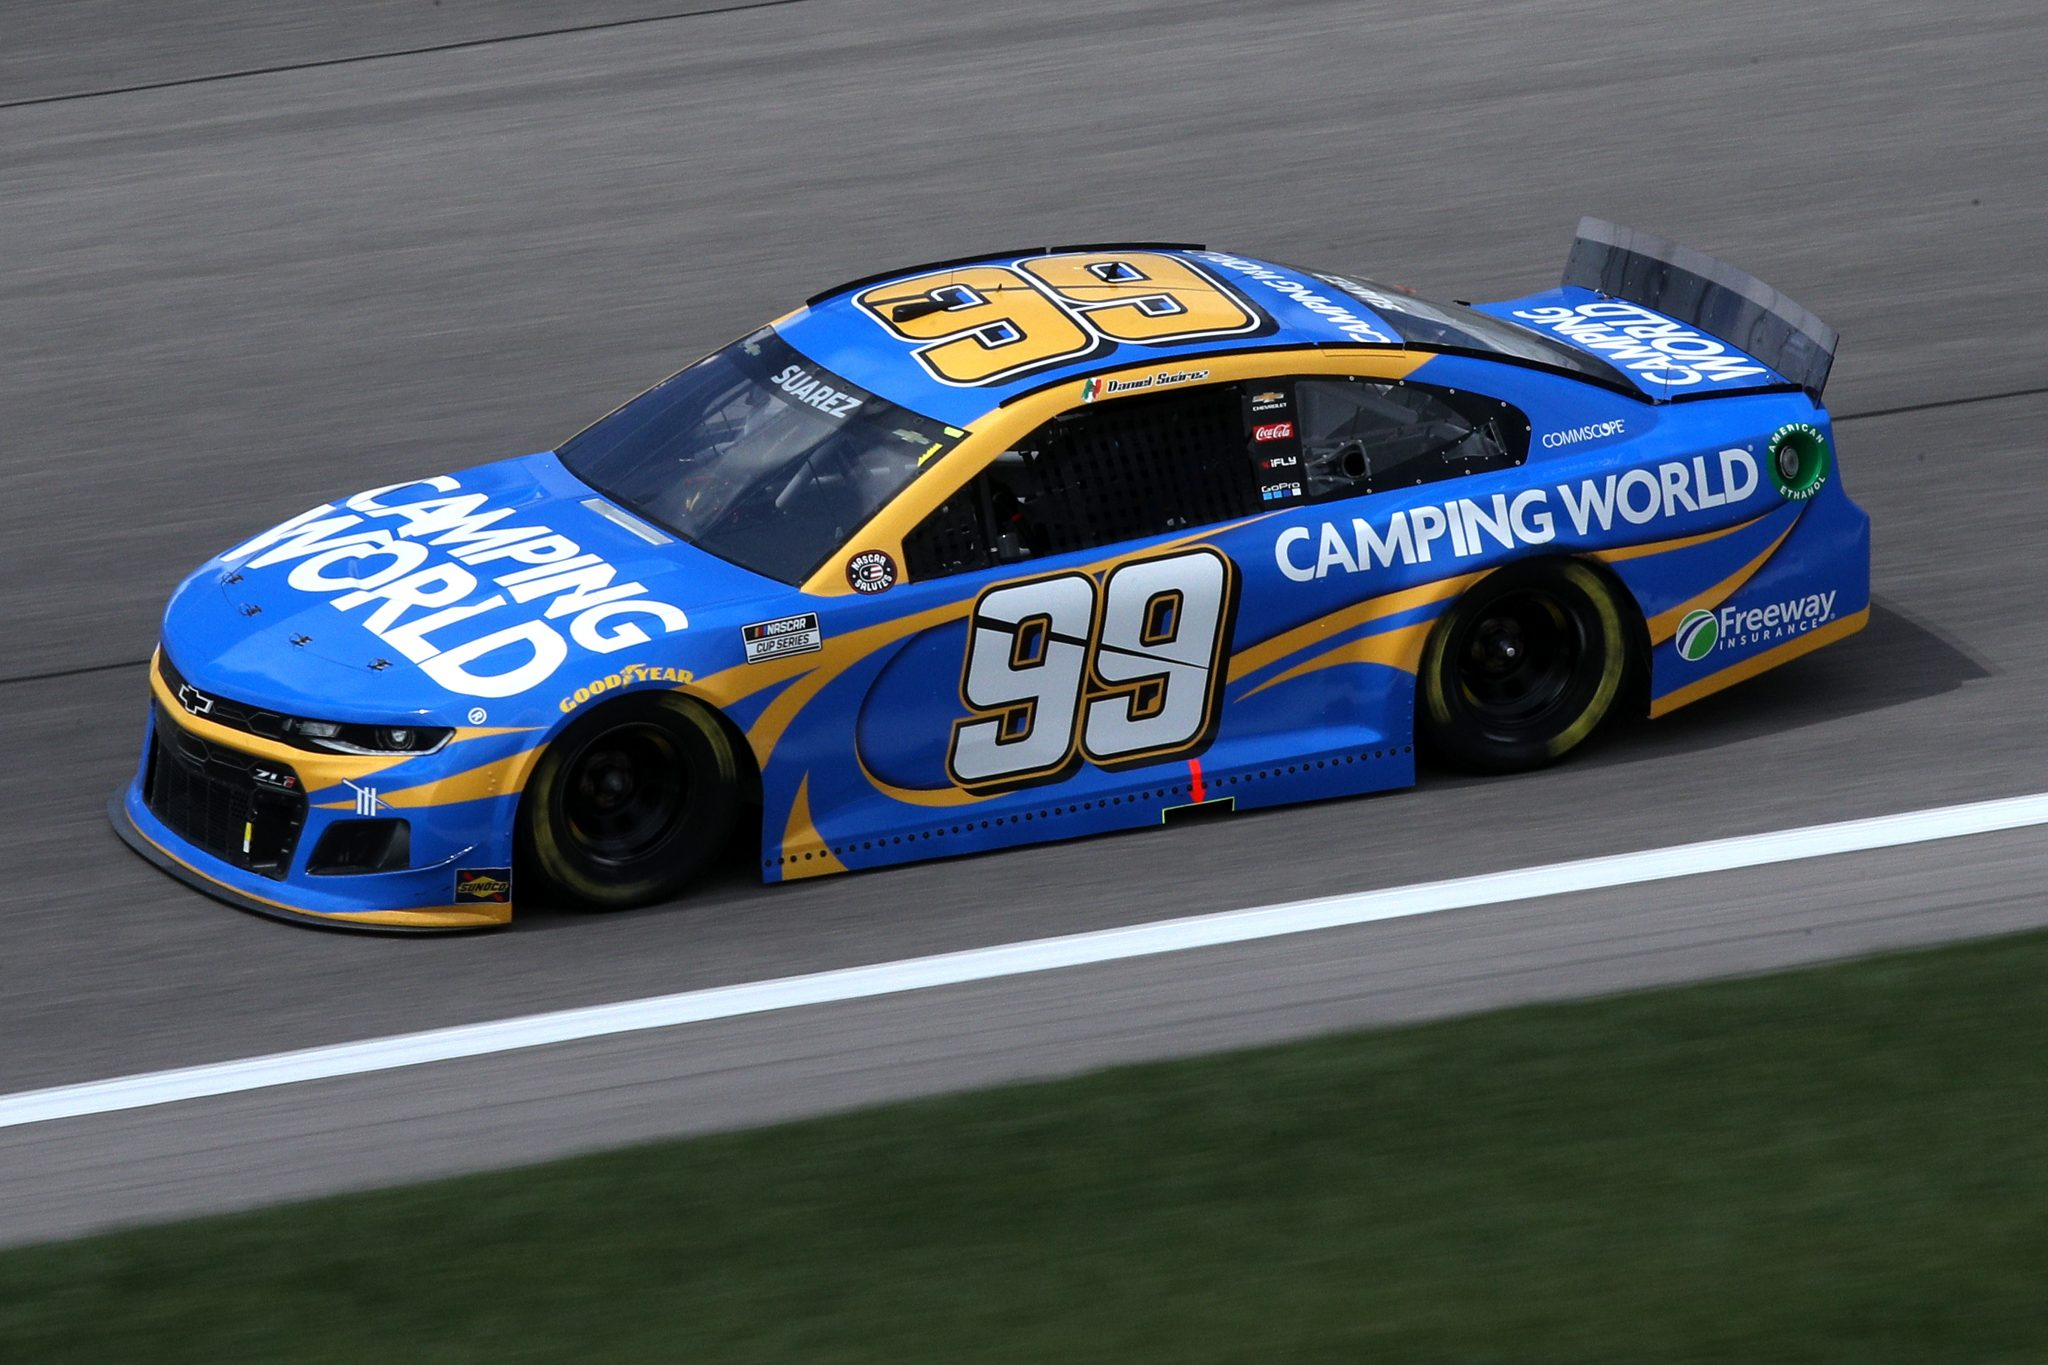 KANSAS CITY, KANSAS - MAY 02: Daniel Suarez, driver of the #99 Camping World Chevrolet, drives during the NASCAR Cup Series Buschy McBusch Race 400 at Kansas Speedway on May 02, 2021 in Kansas City, Kansas. (Photo by Sean Gardner/Getty Images) | Getty Images